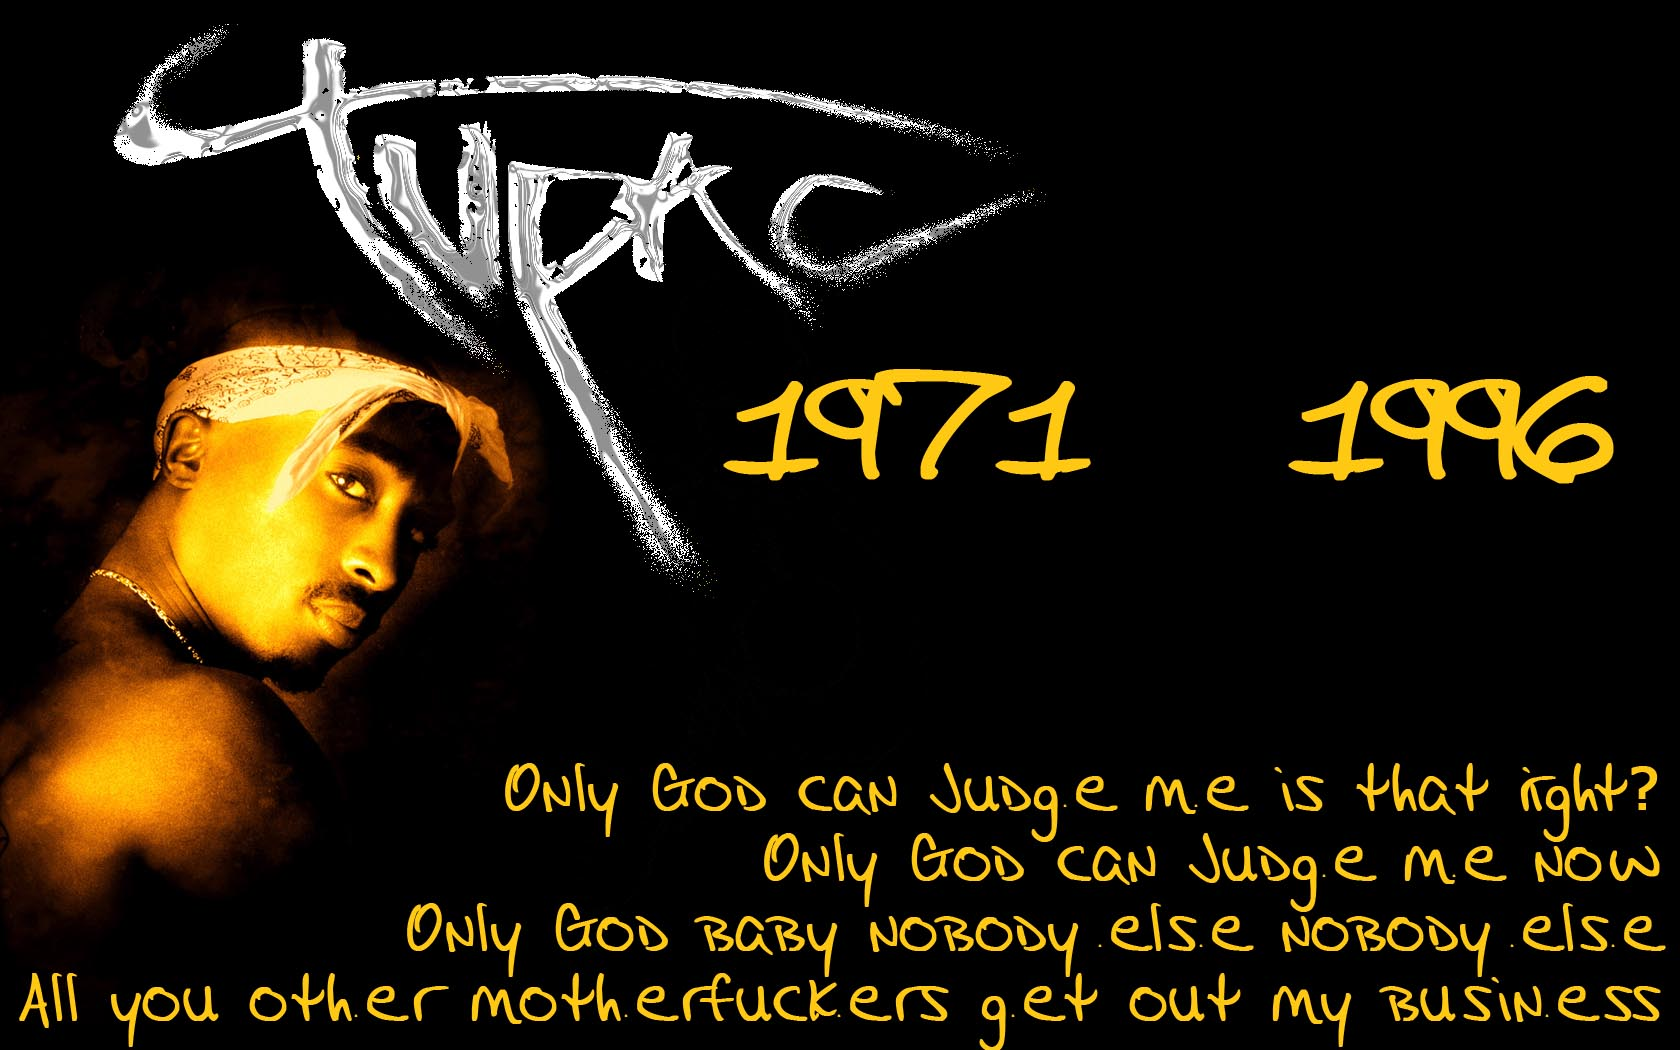 Quotes 2Pac Tupac Shakur Quotes Hd Wallpaper Photo Background Wallpapers